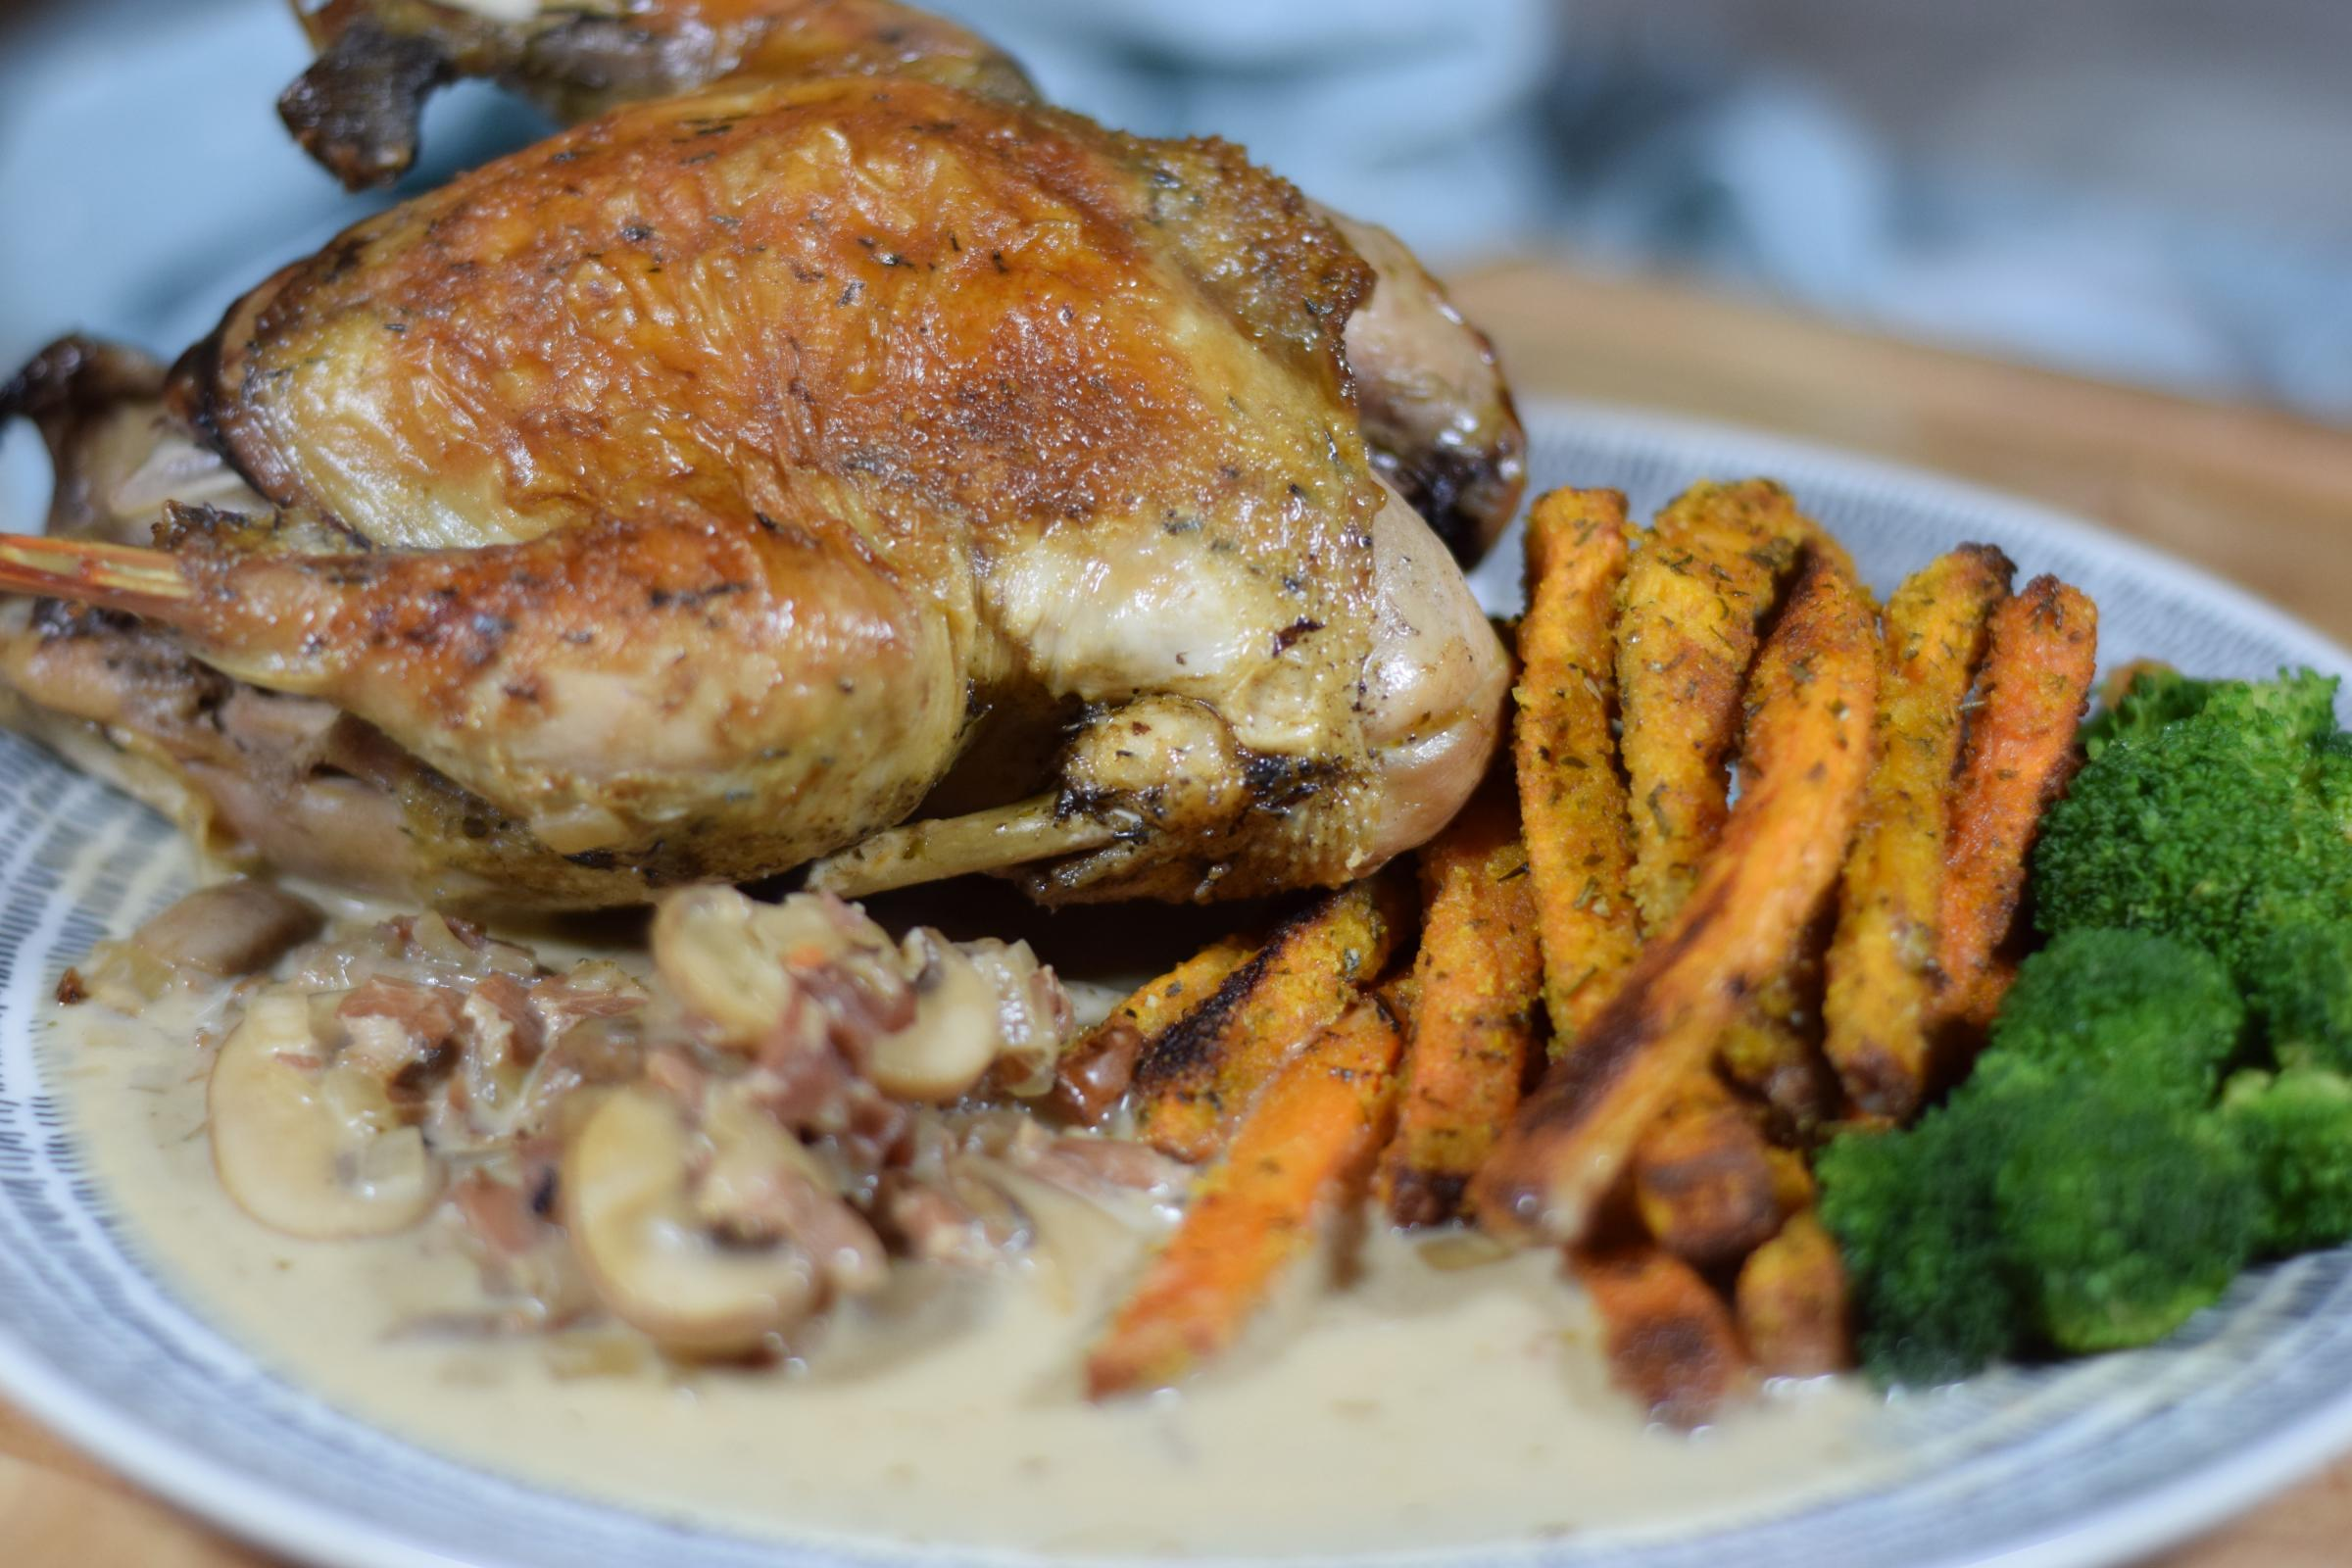 Should pheasant be on McDonald's menus? This recipe could change your mind...